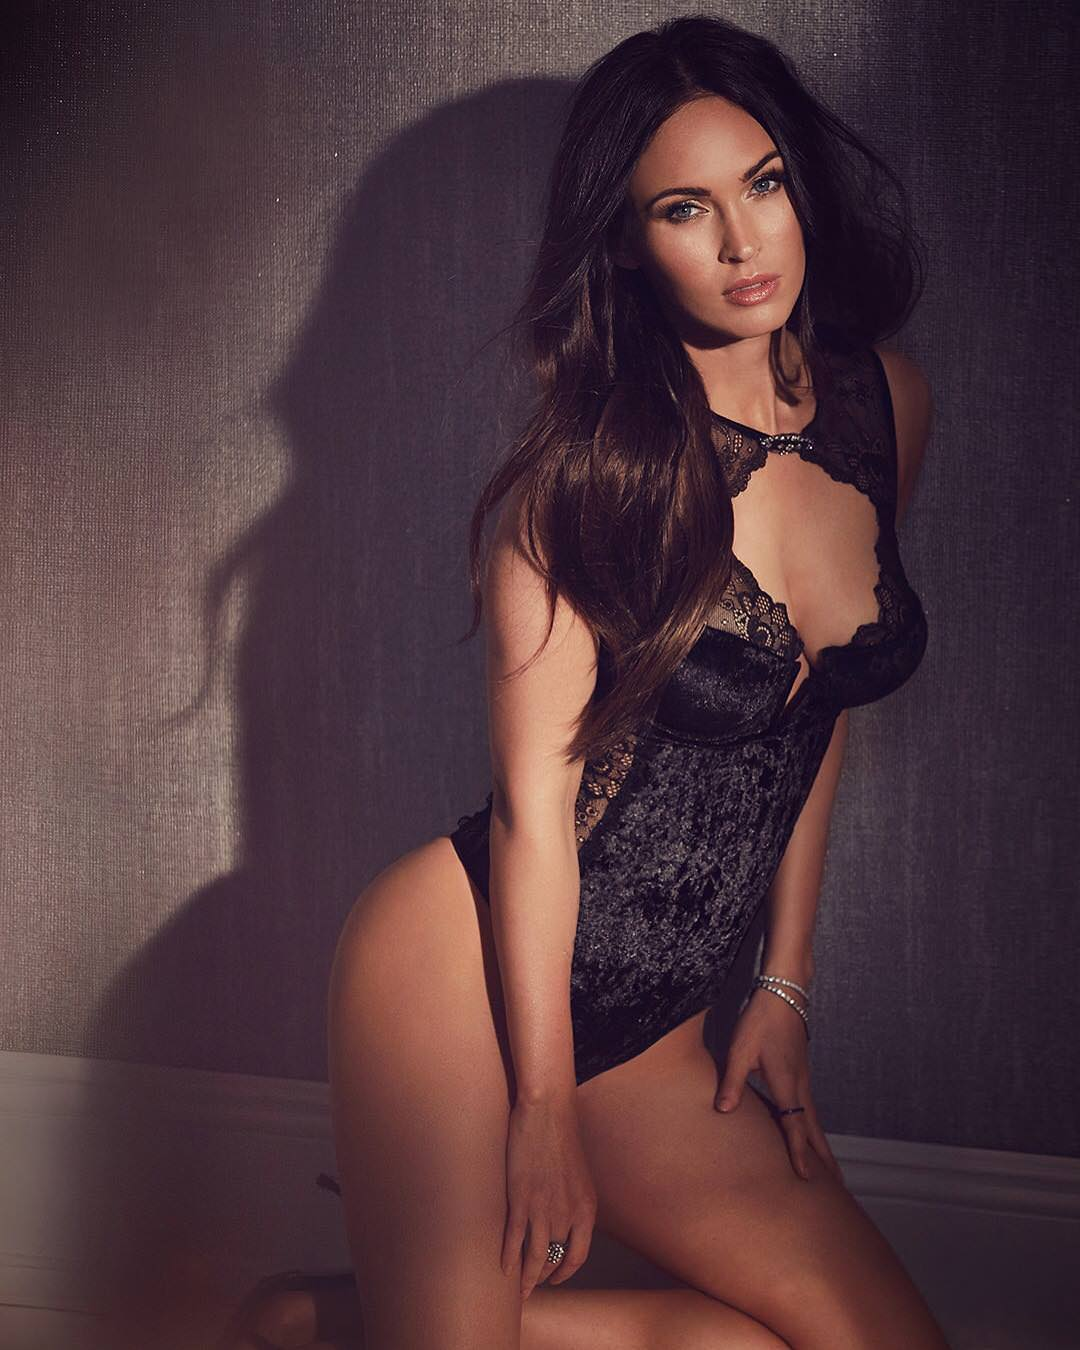 Megan Fox guapas